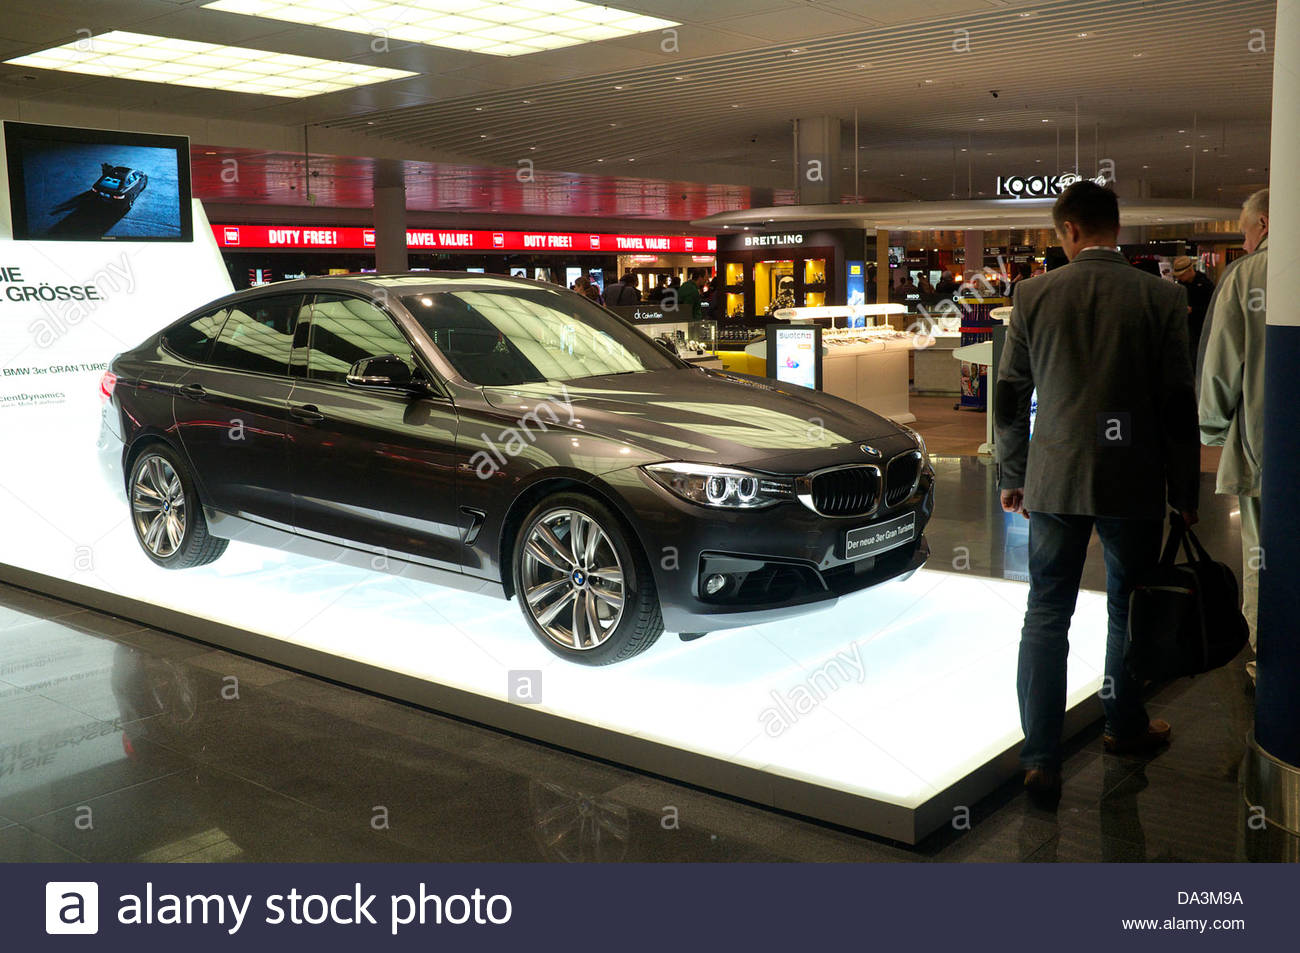 Promotional Car Stock Photos Promotional Car Stock Images Alamy - Car display